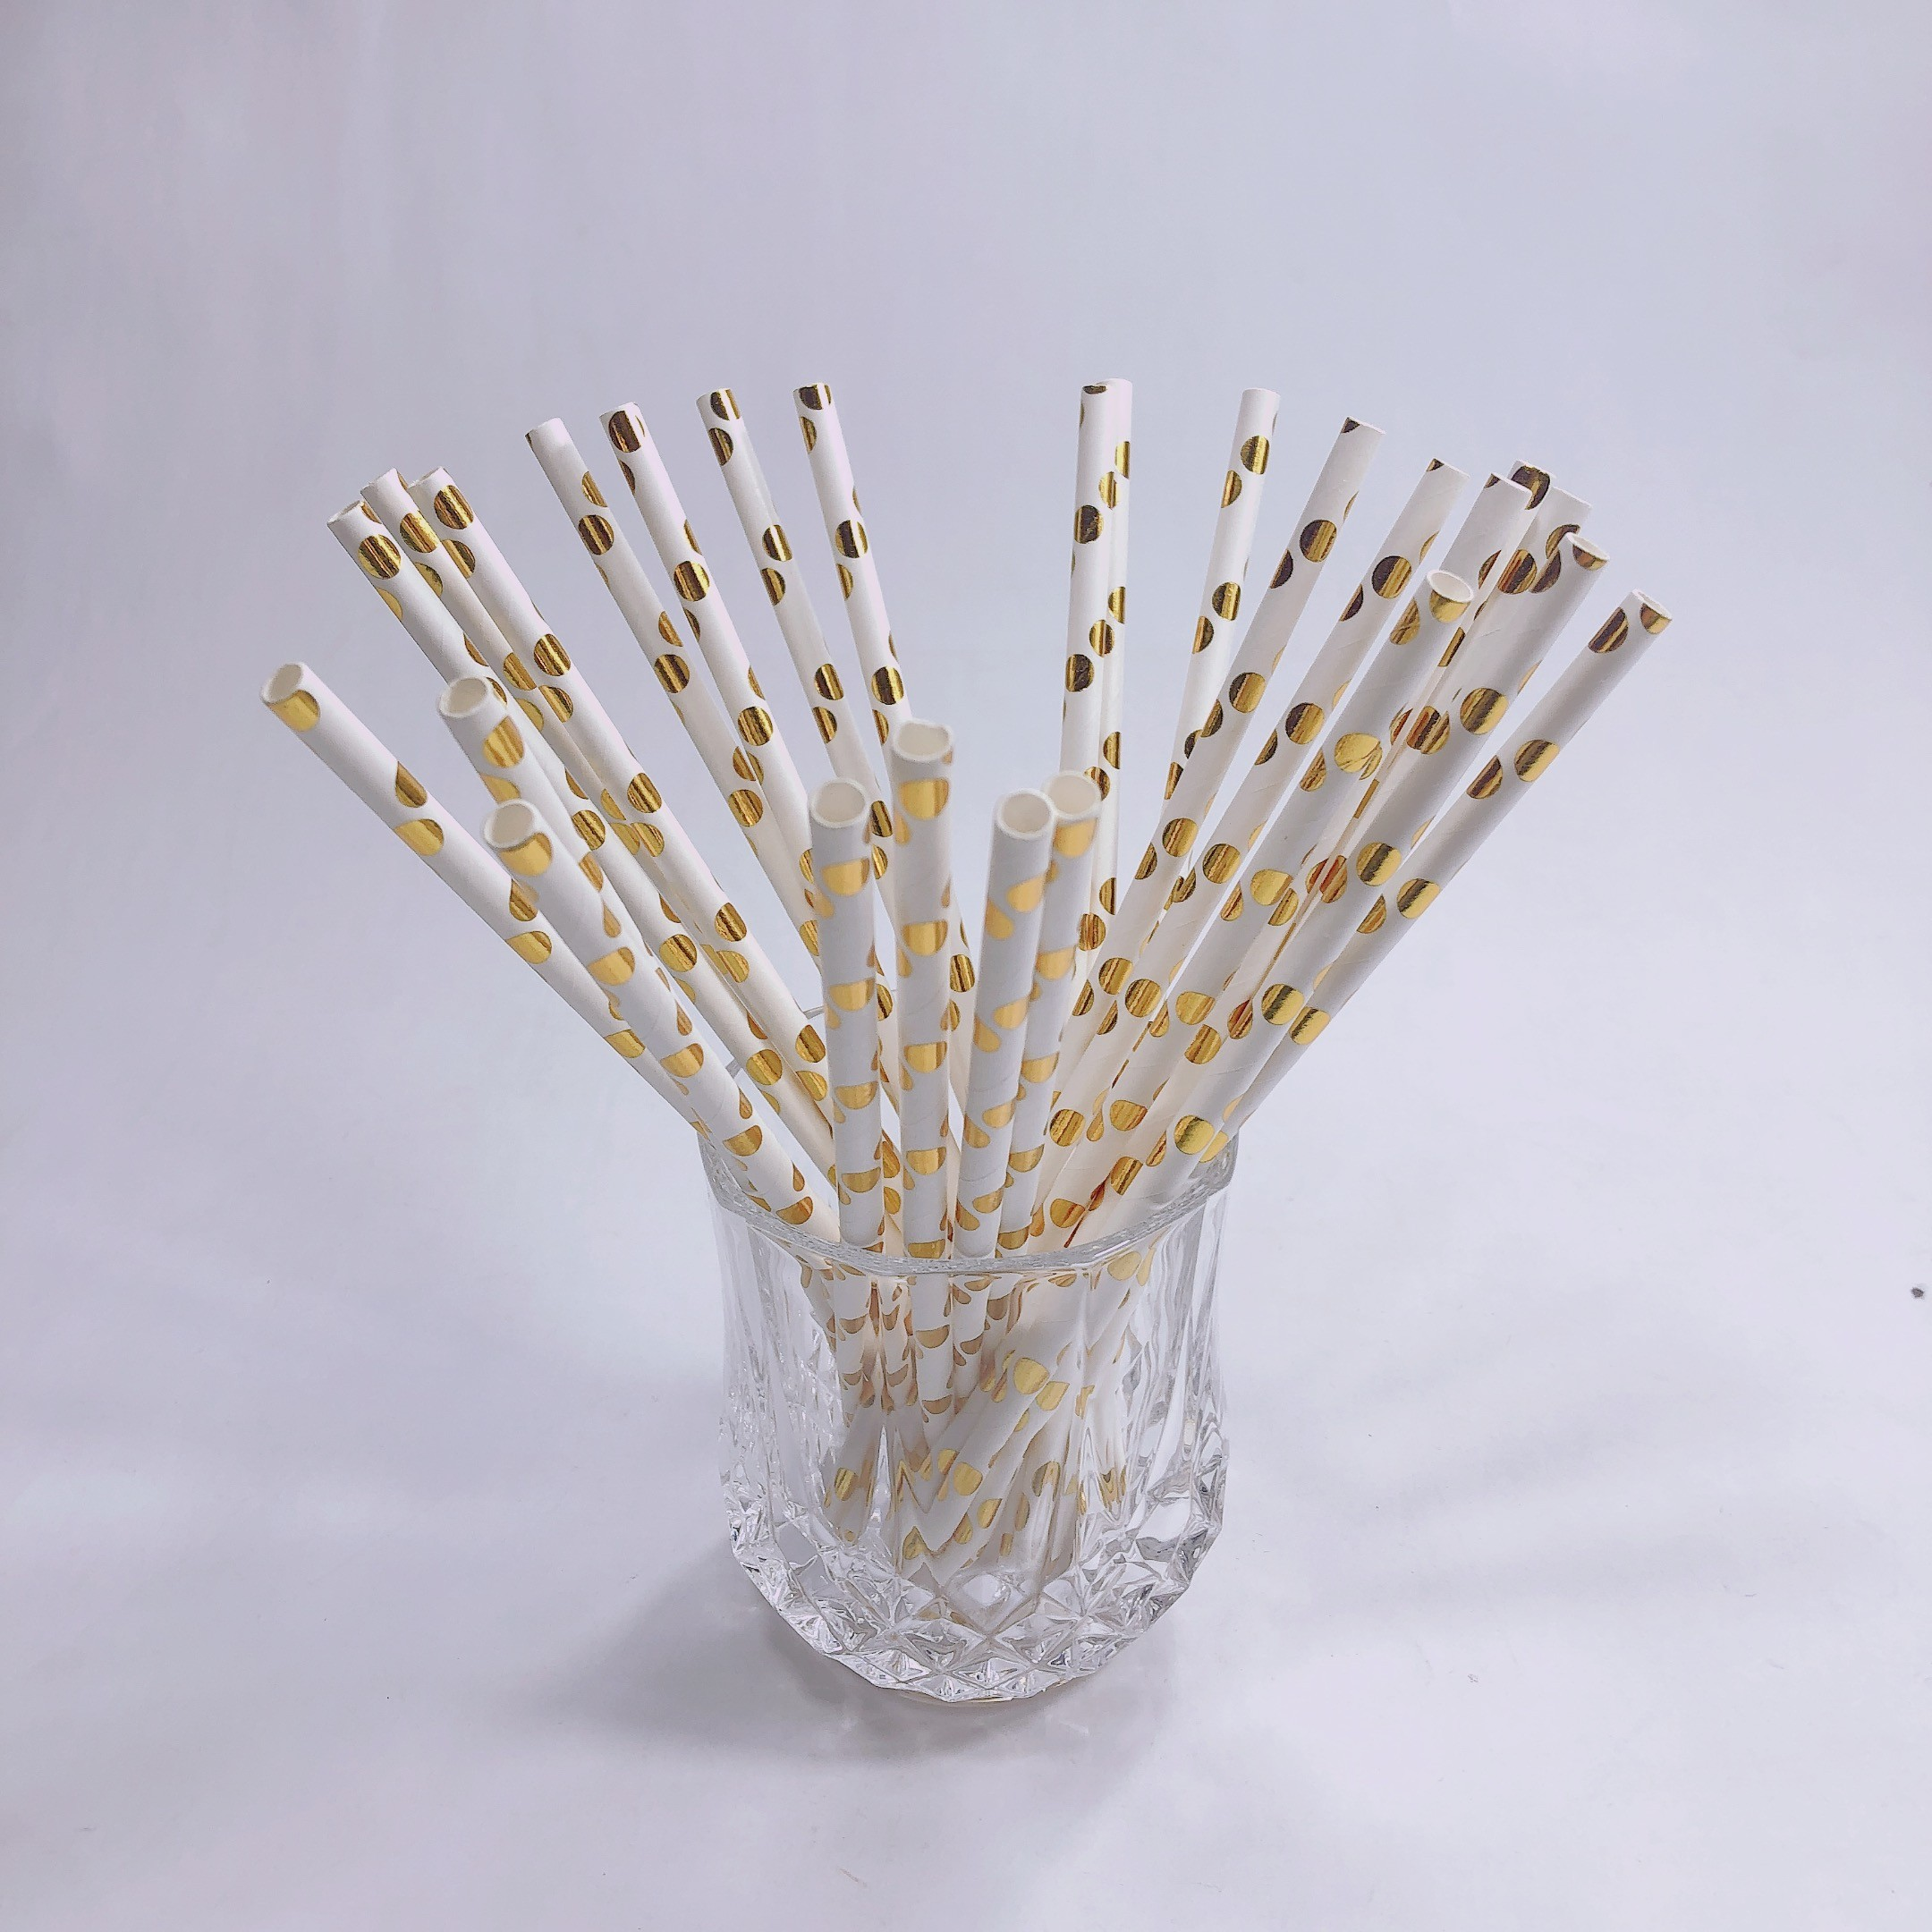 Are paper straws better?